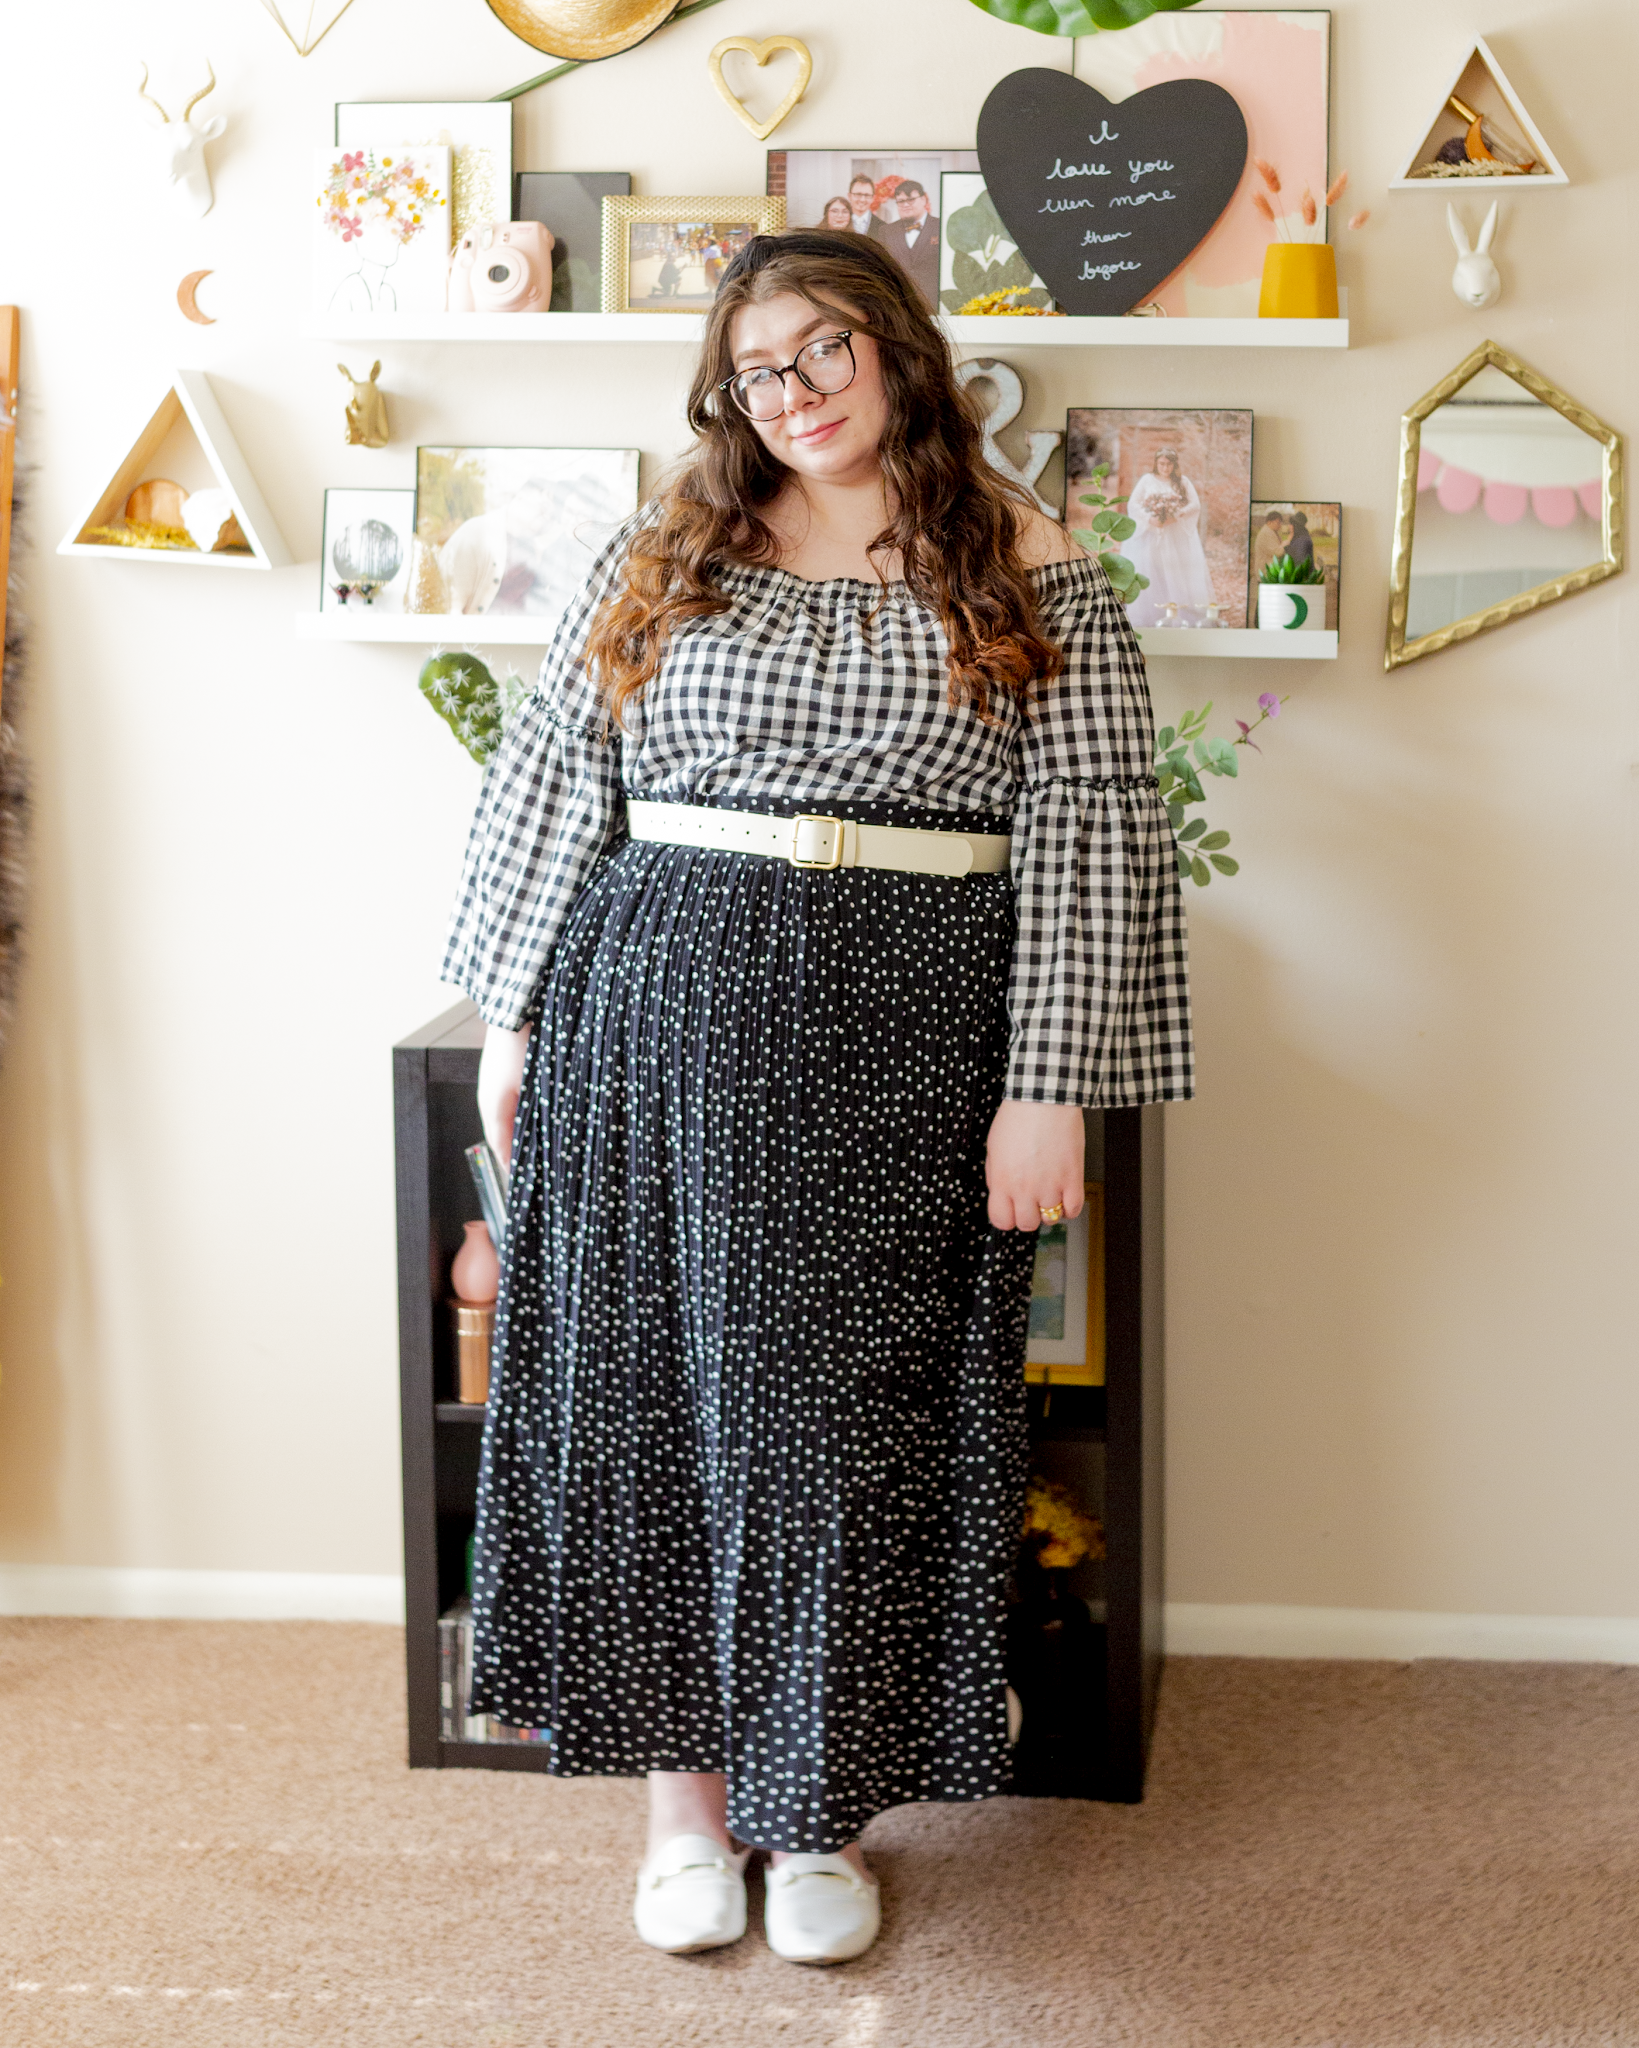 An outfit consisting of a black on white gingham bardot top with angel sleeves tucked into a white on black microdot pleated midi skirt belted with a white belt with a minimal gold buckle and white faux croc mules with a minimal gold buckle detail.